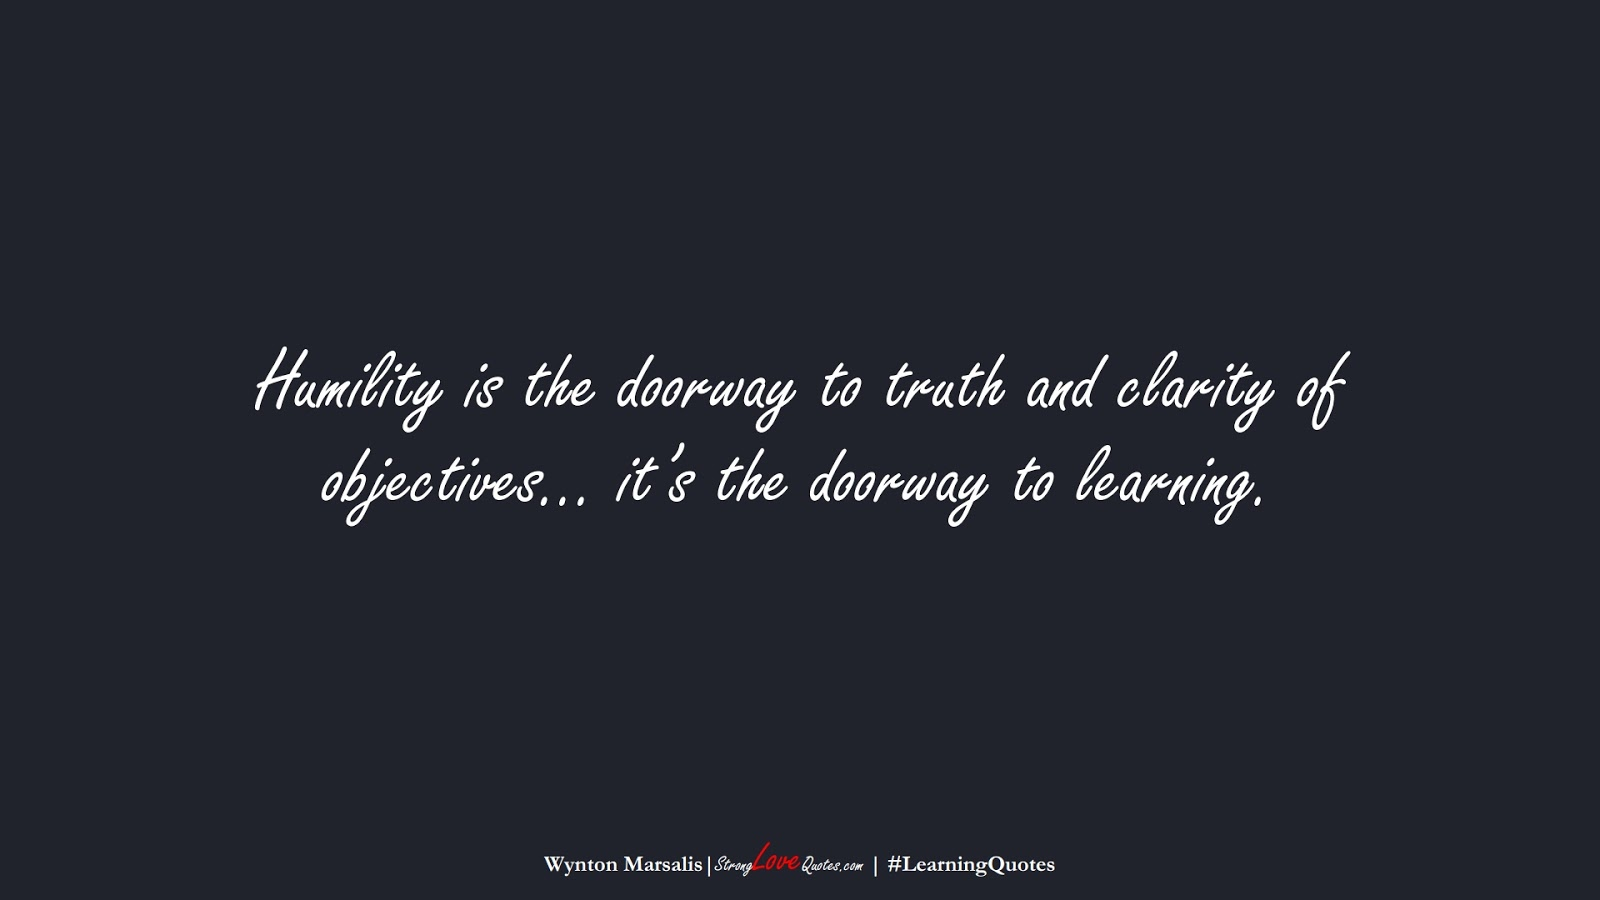 Humility is the doorway to truth and clarity of objectives… it's the doorway to learning. (Wynton Marsalis);  #LearningQuotes